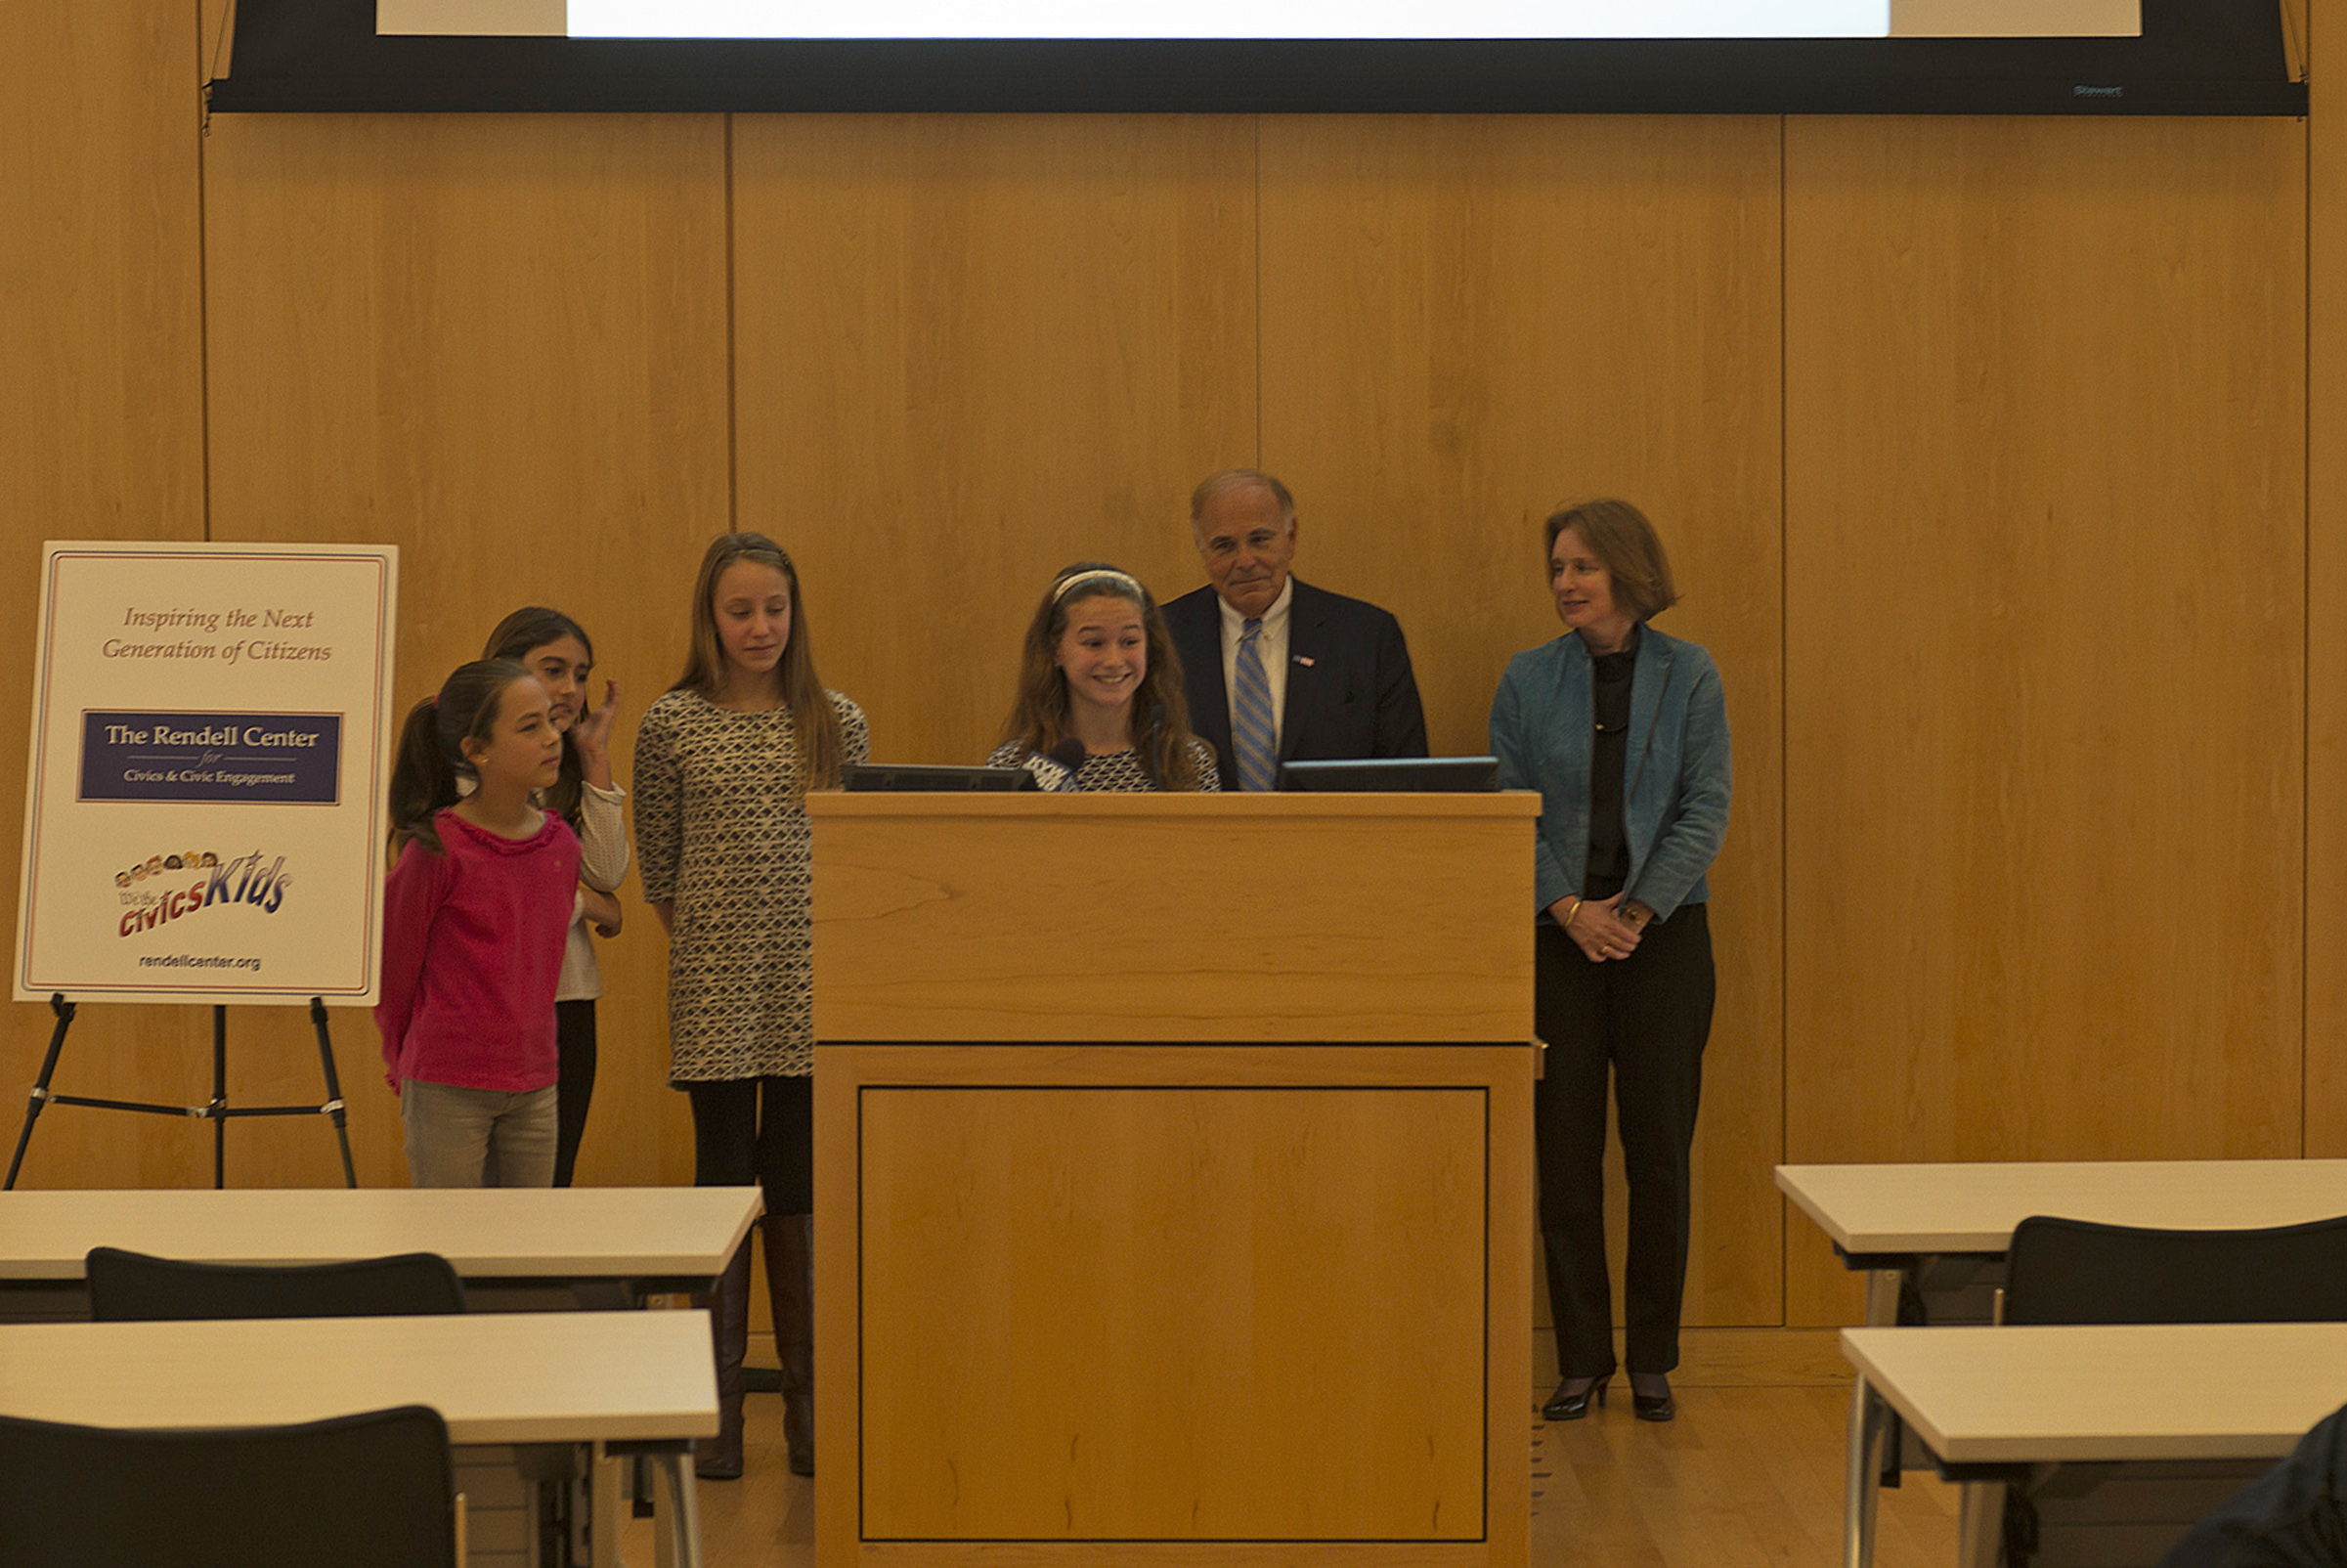 5th graders from Radnor Elementary (l-r) Lydia Schwarz, Gabriela Heberling, Sophia Mlodzienski, and Mallory Toomey, with Former Gov. Rendell and Beth Specker.